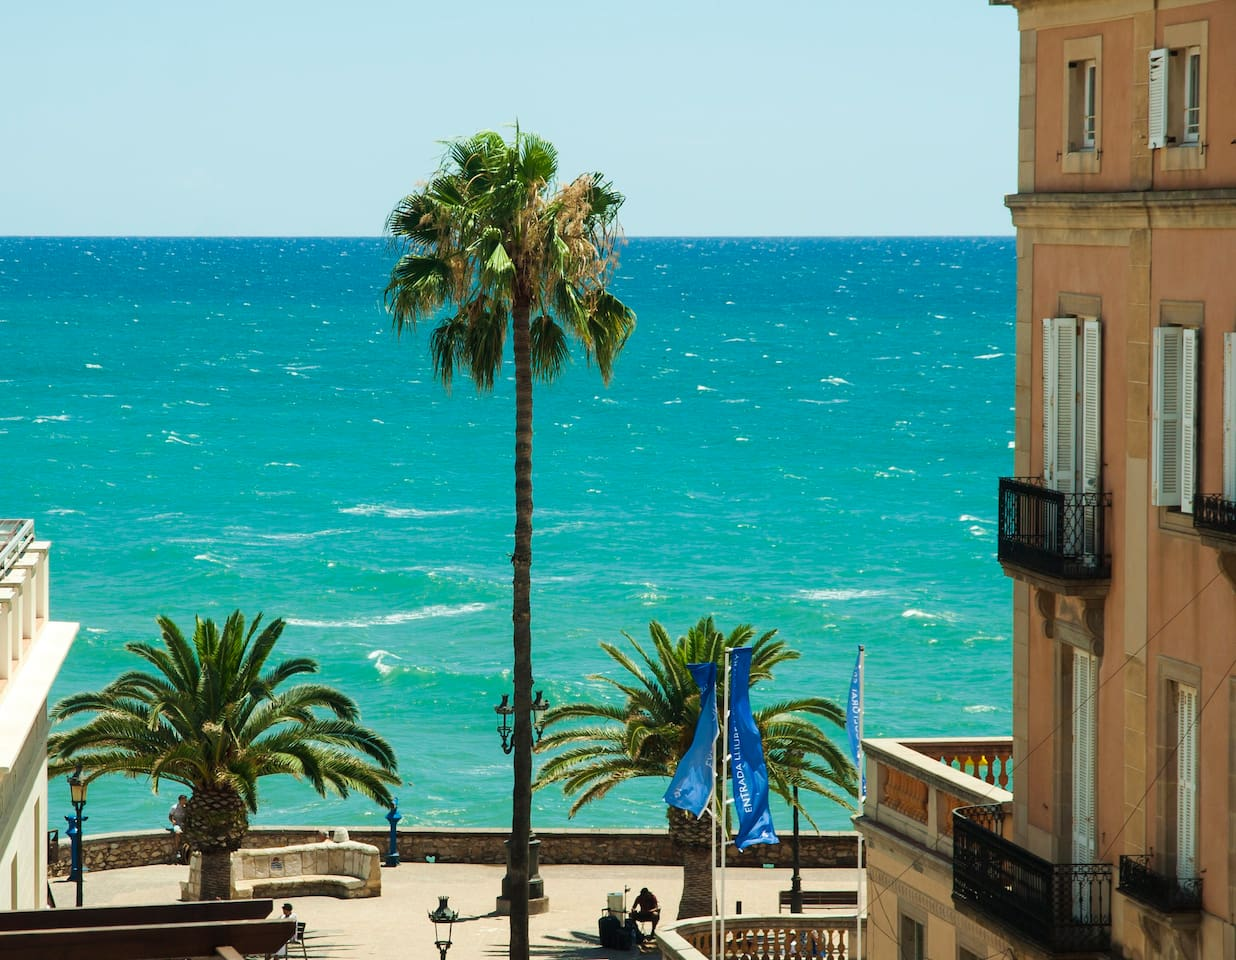 Magnificent Mediterranean Sea Views from Two Private, Sun-Drenched Terraces. Sea View Sitges Holiday Rental Apartment,  Beach Vacation Accommodation. Tourist License: HUTB-006157.